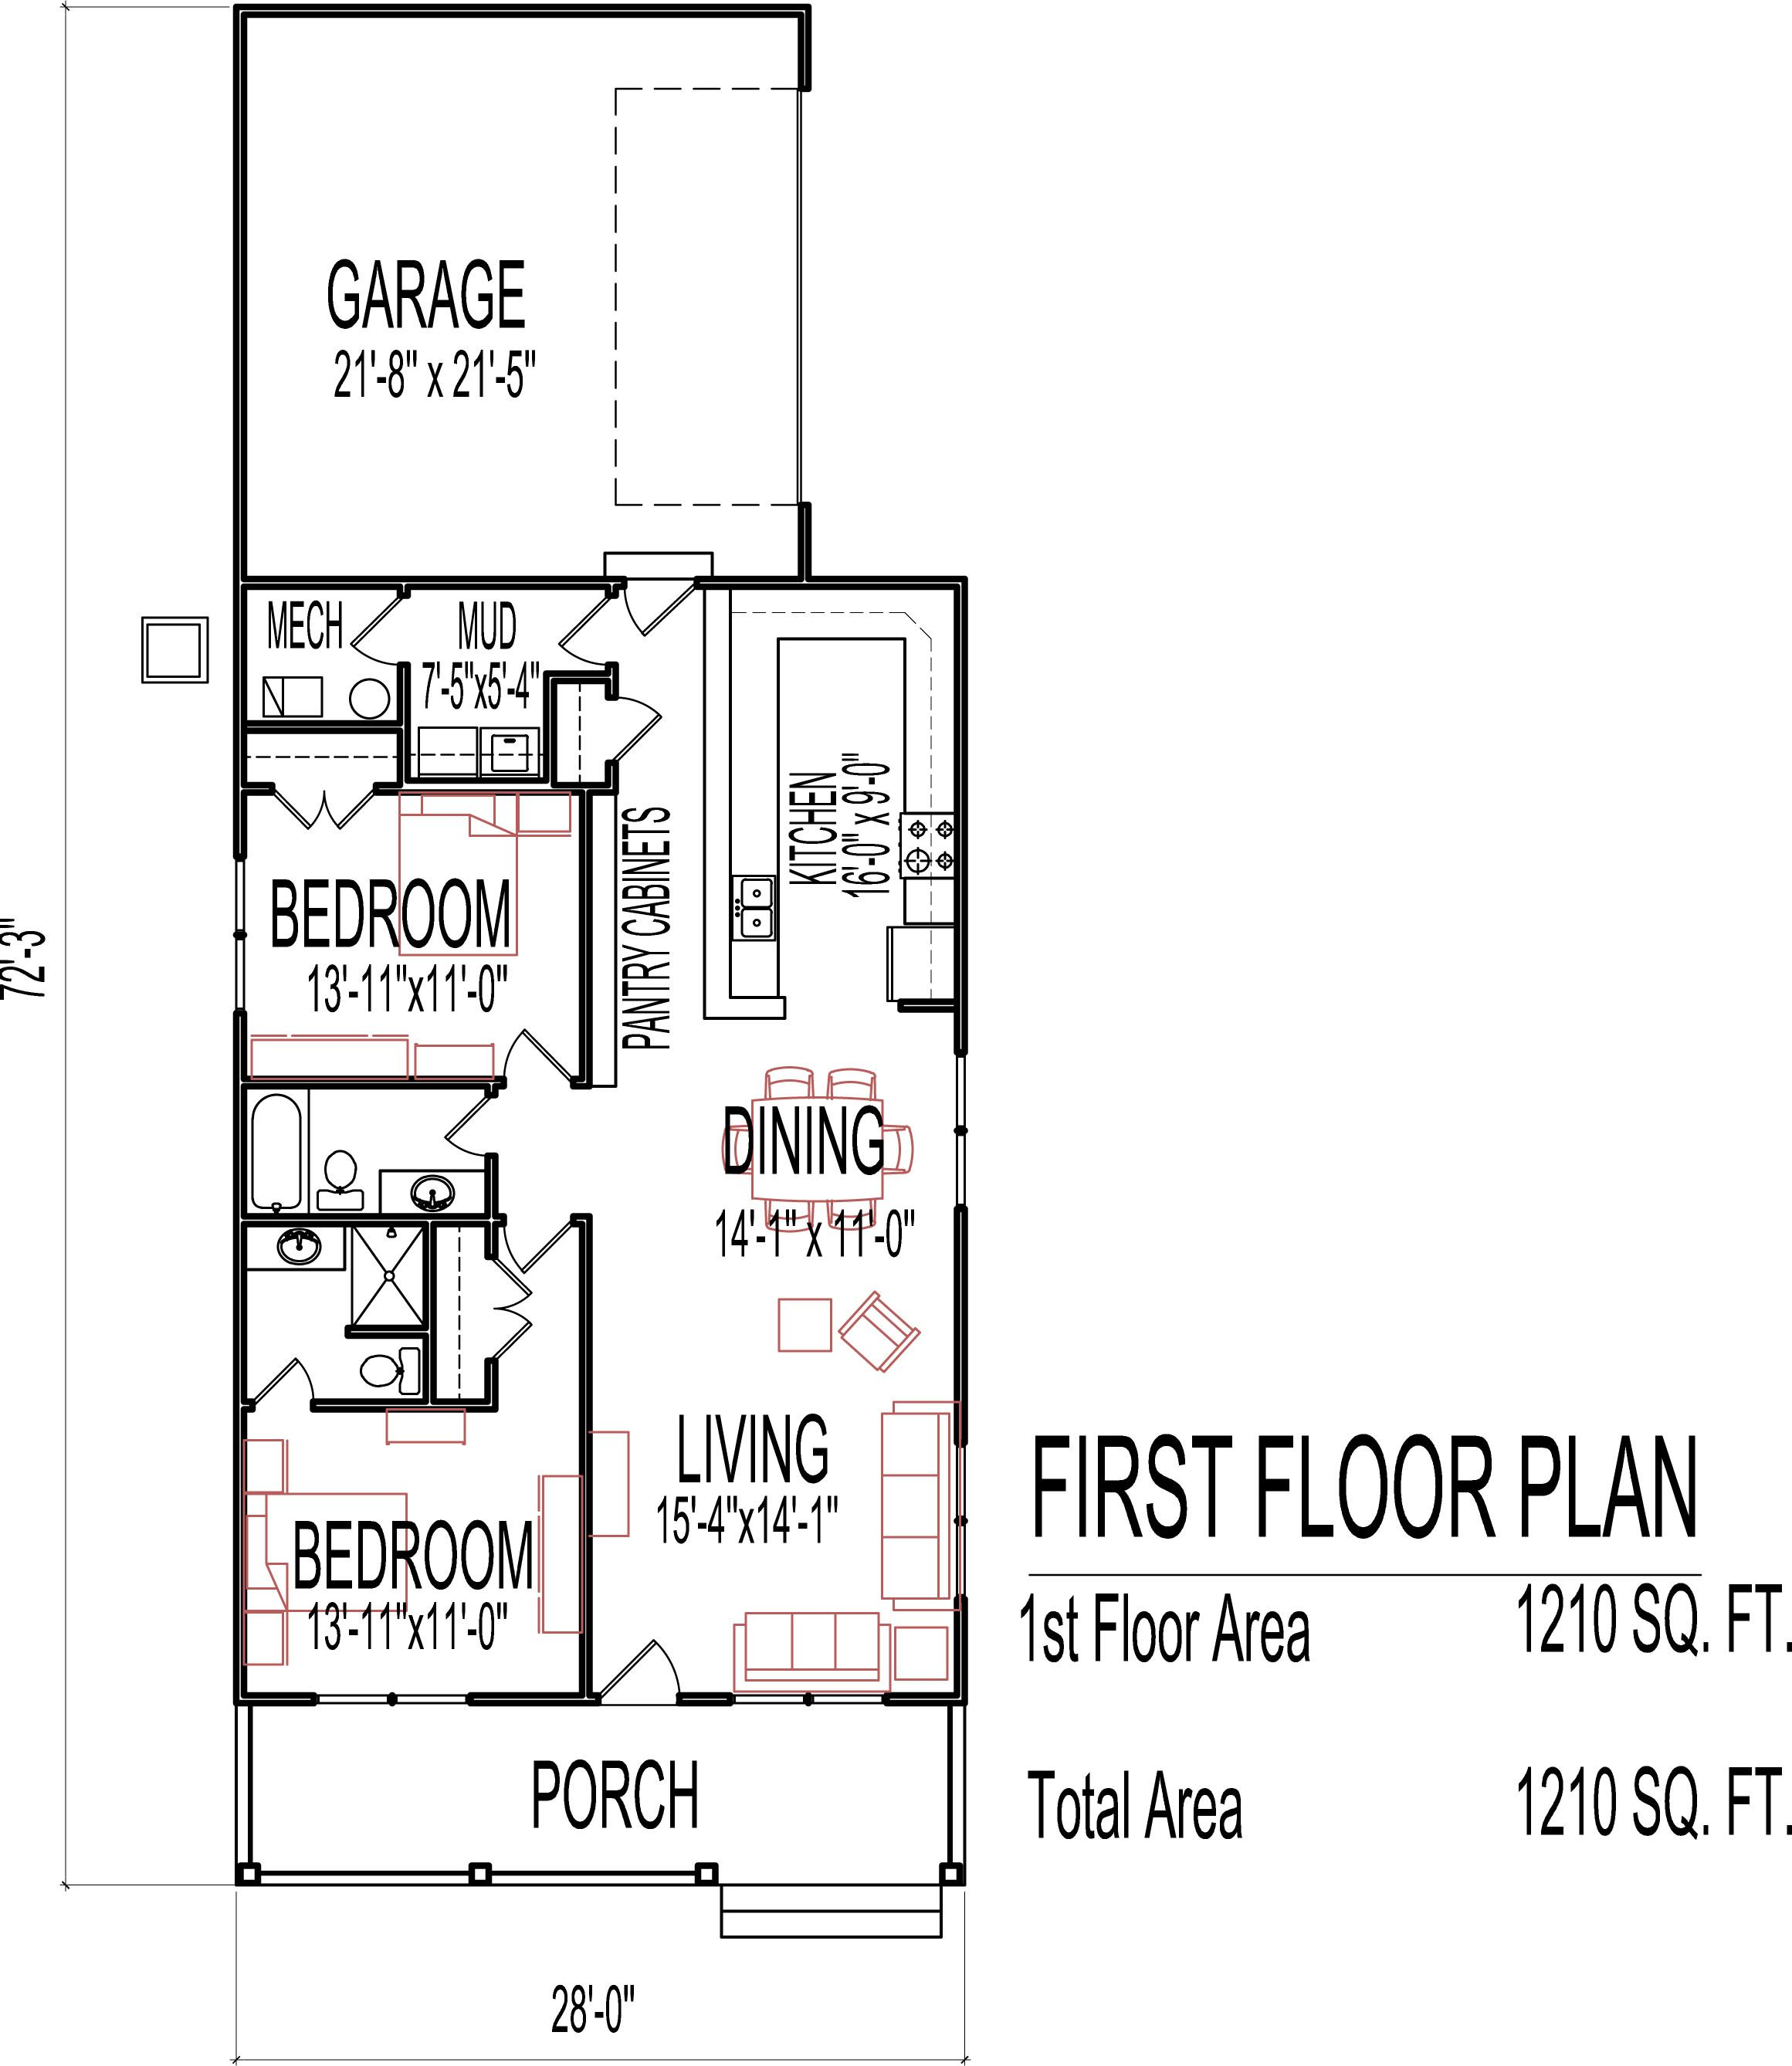 small low cost economical 2 bedroom 2 bath 1200 sq ft single story house floor plans - Small House Blueprints 2